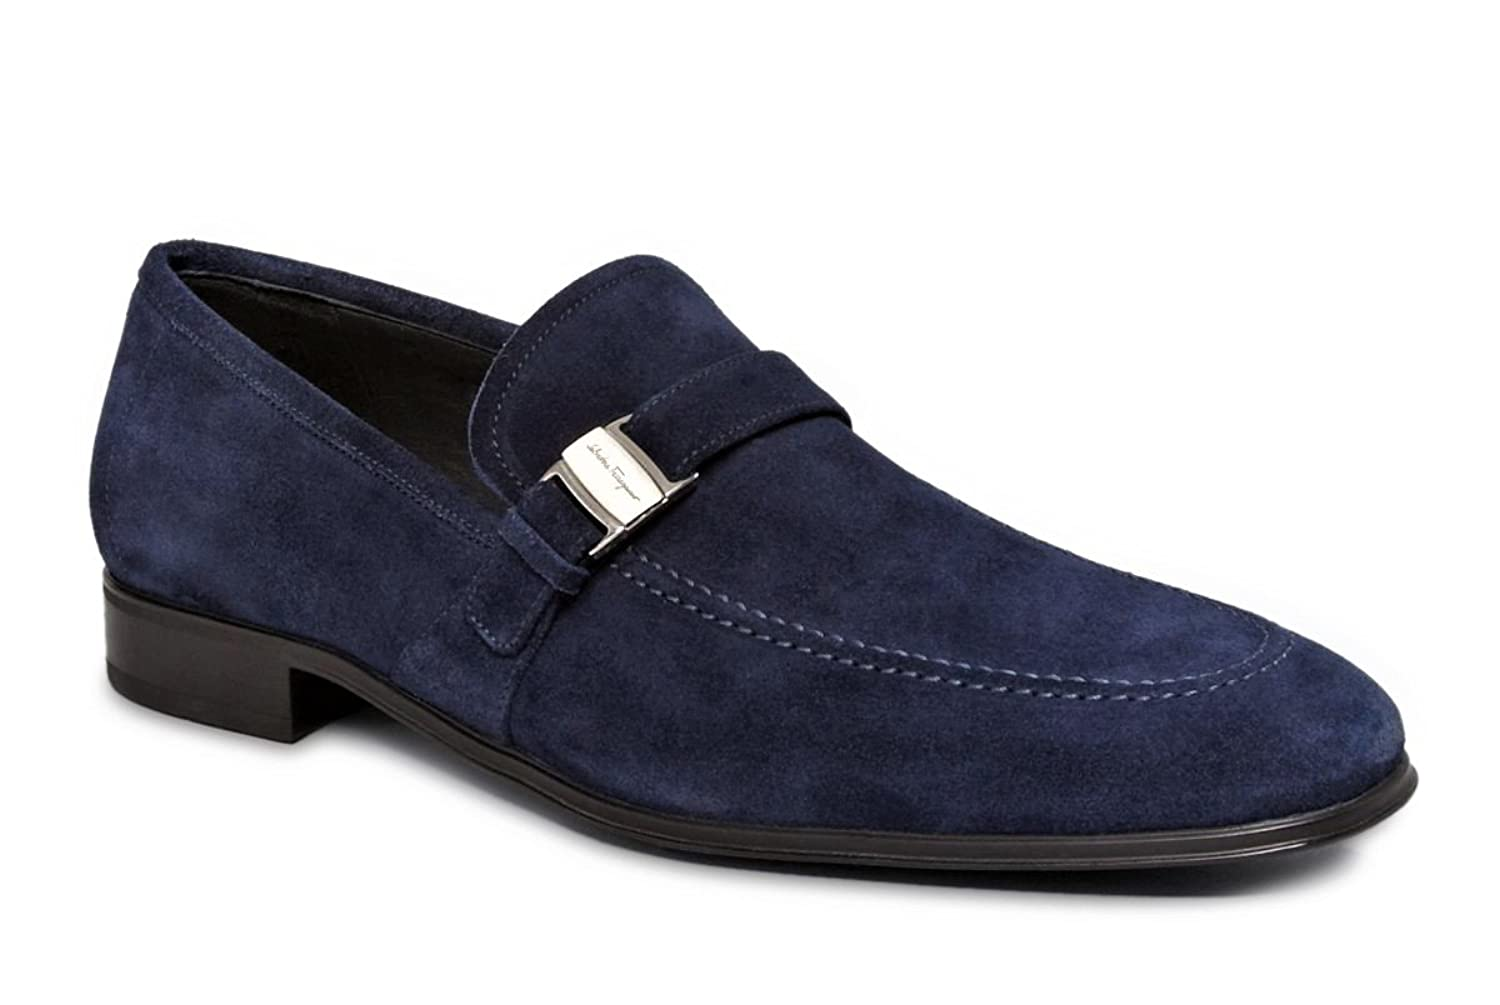 454cb5dd5bd Amazon.com  Salvatore Ferragamo Pinot Mens Blue Suede Loafers Shoes Made in  Italy (8 D(M) US)  Shoes